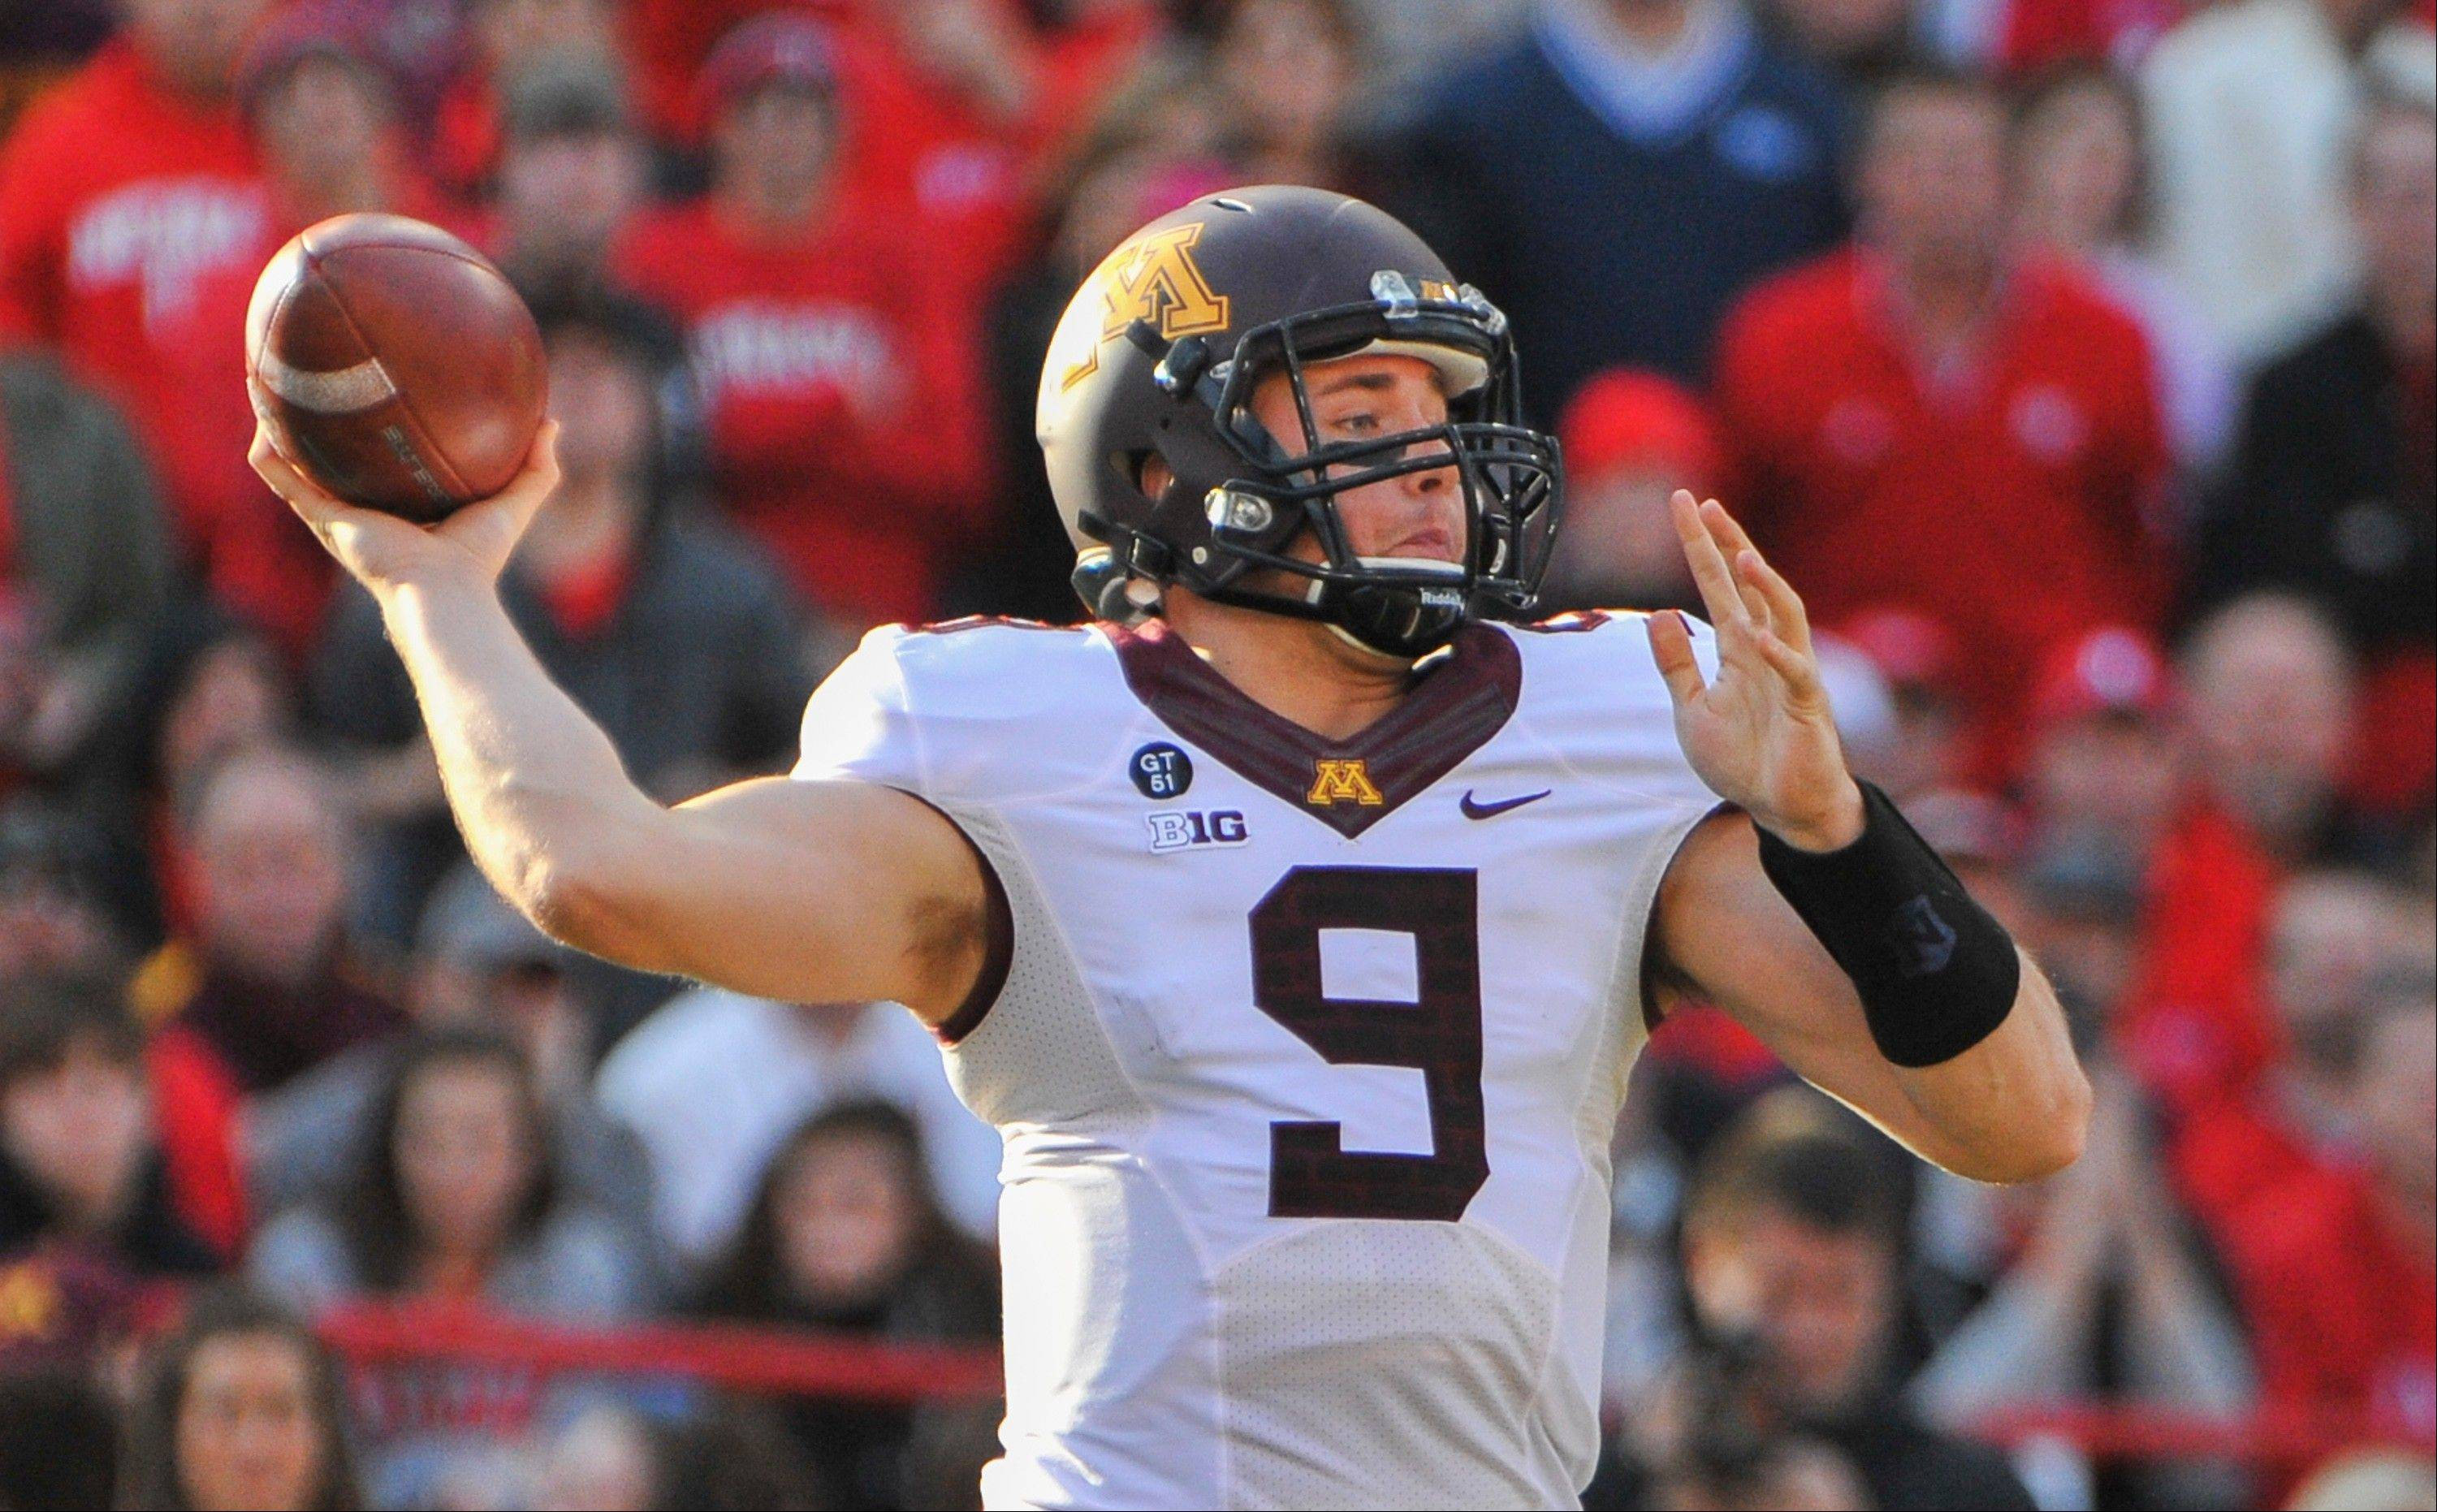 Philip Nelson started seven games as a freshman for Minnesota, but quarterback is one of many positions that must be settled this fall.